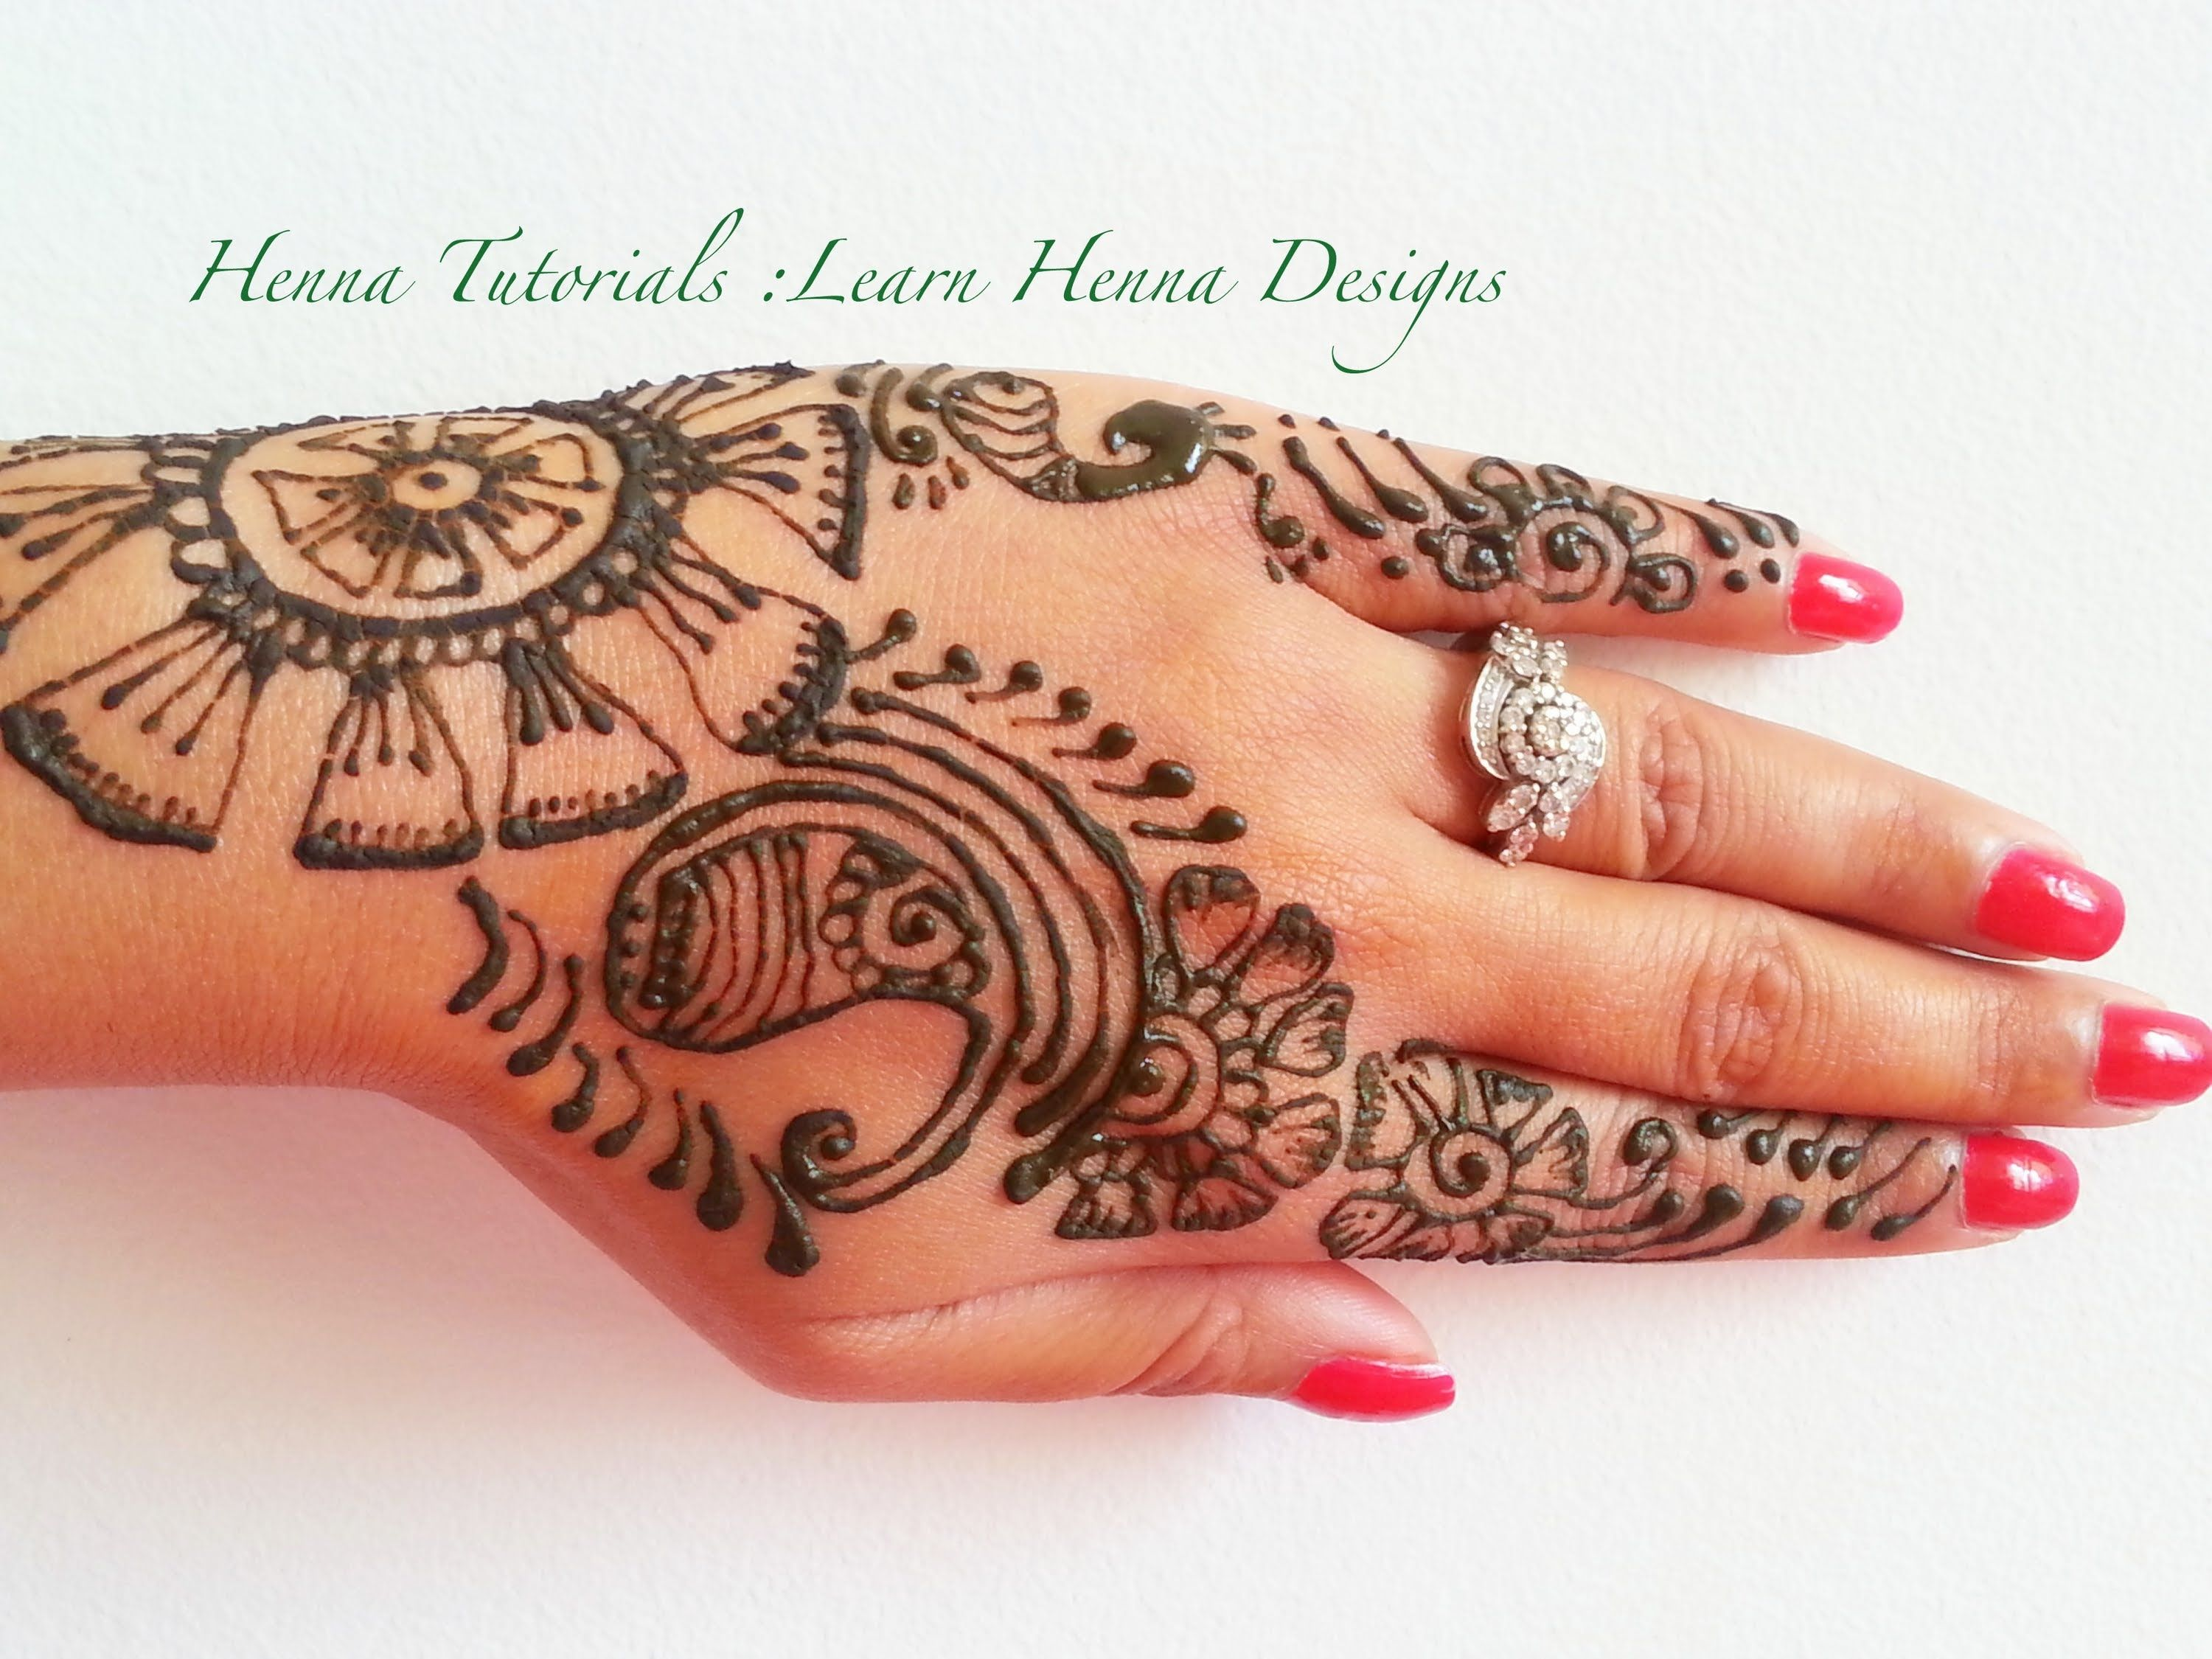 Mehndi Henna Kit Tutorial : How to make henna designs step by tutorial learn